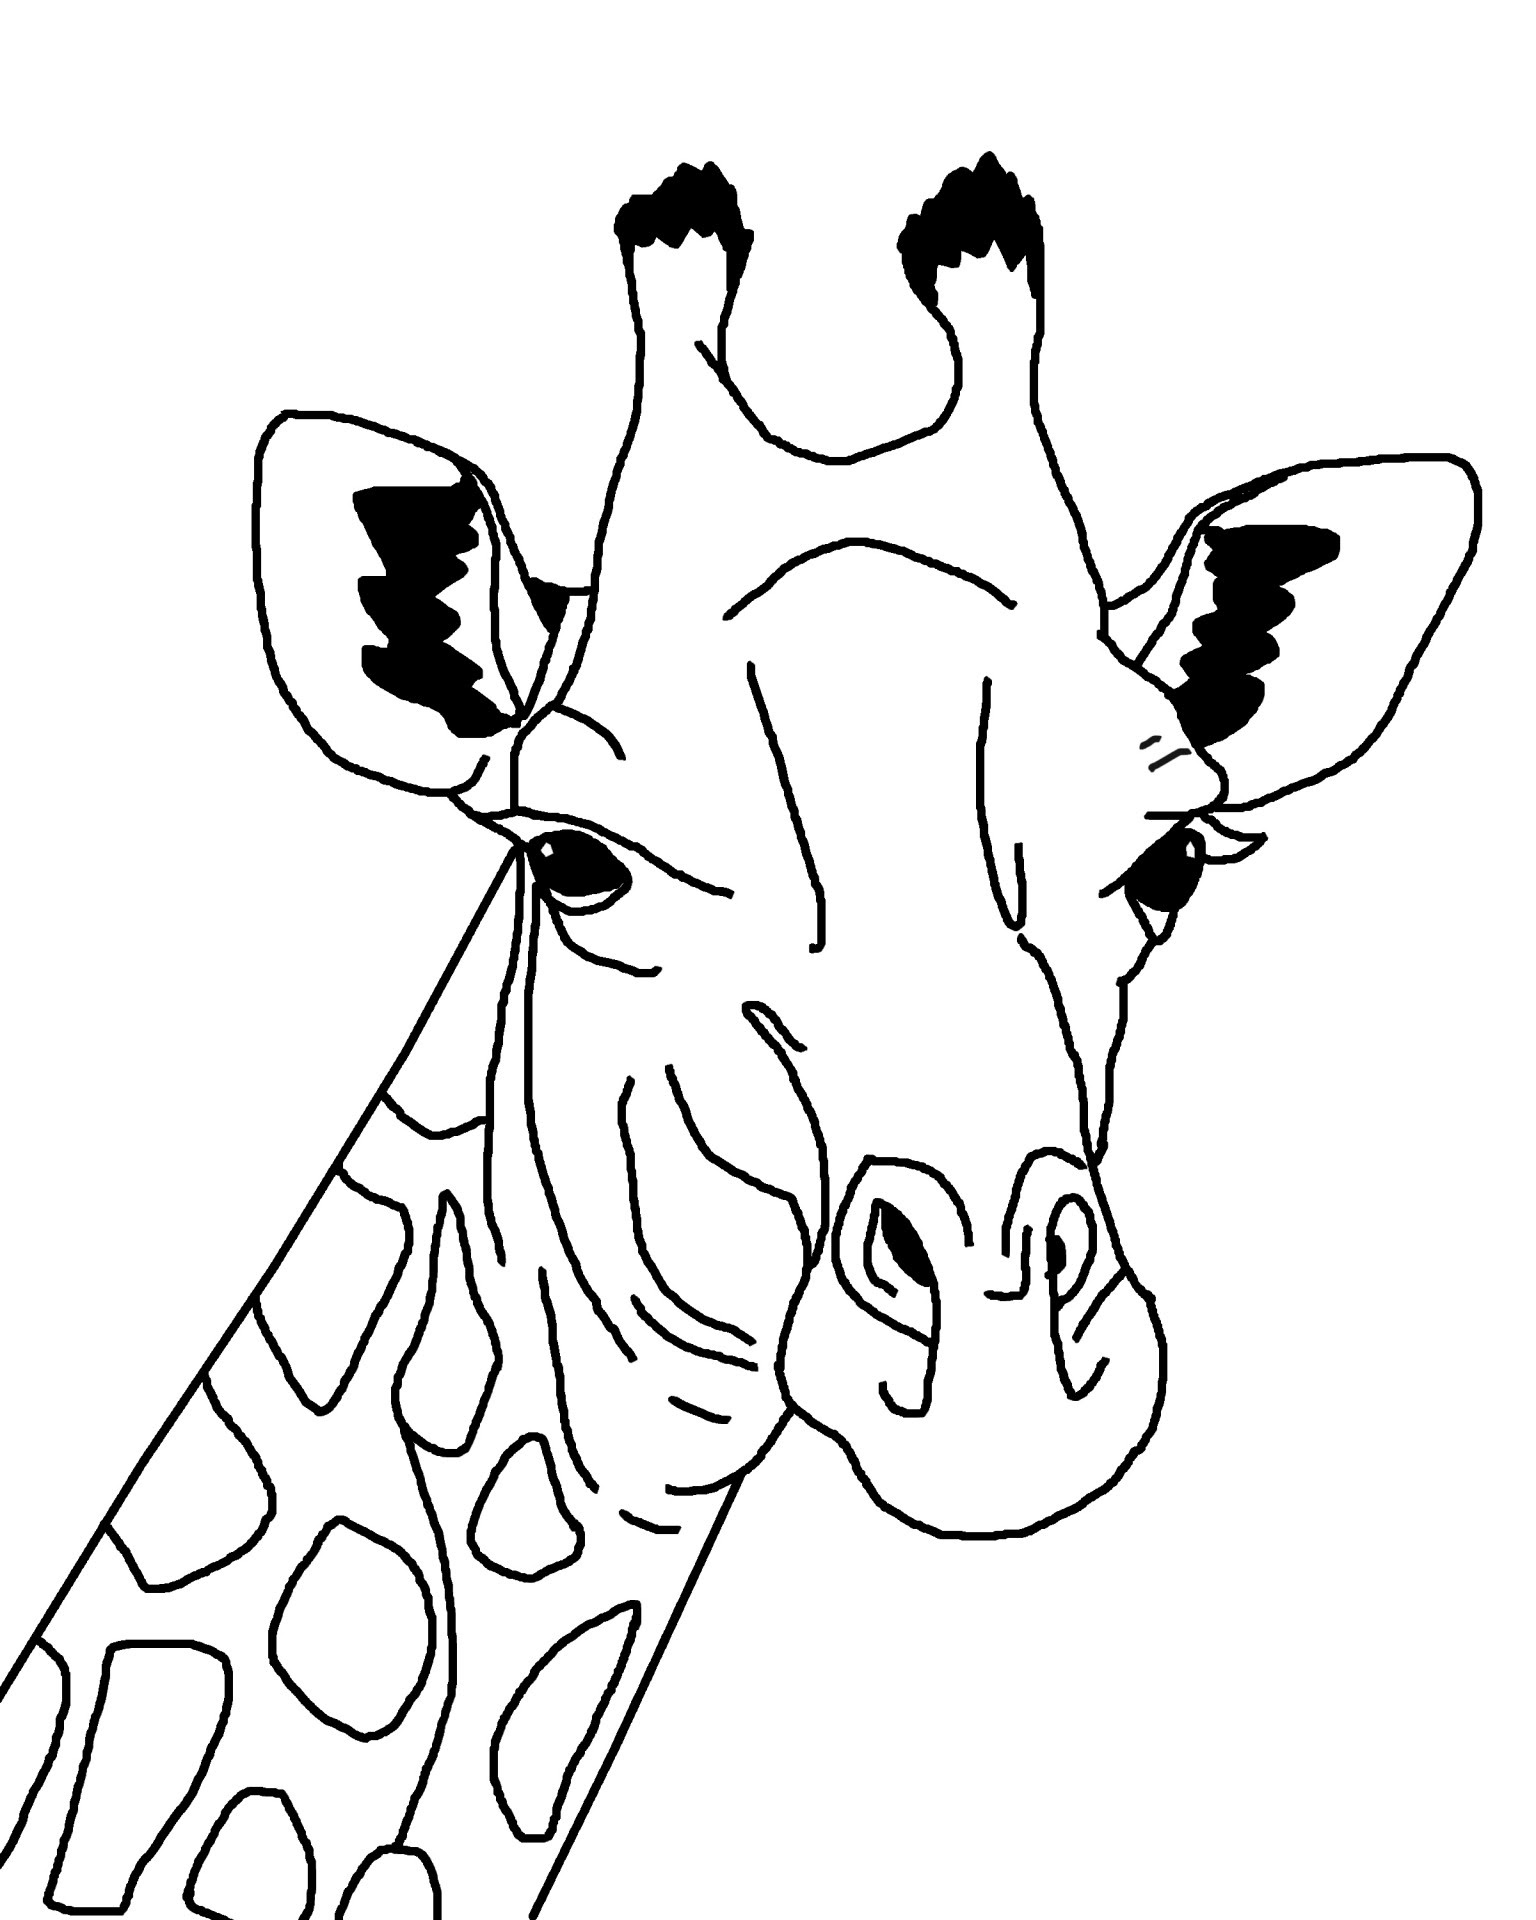 Giraffes - Free Coloring Pages